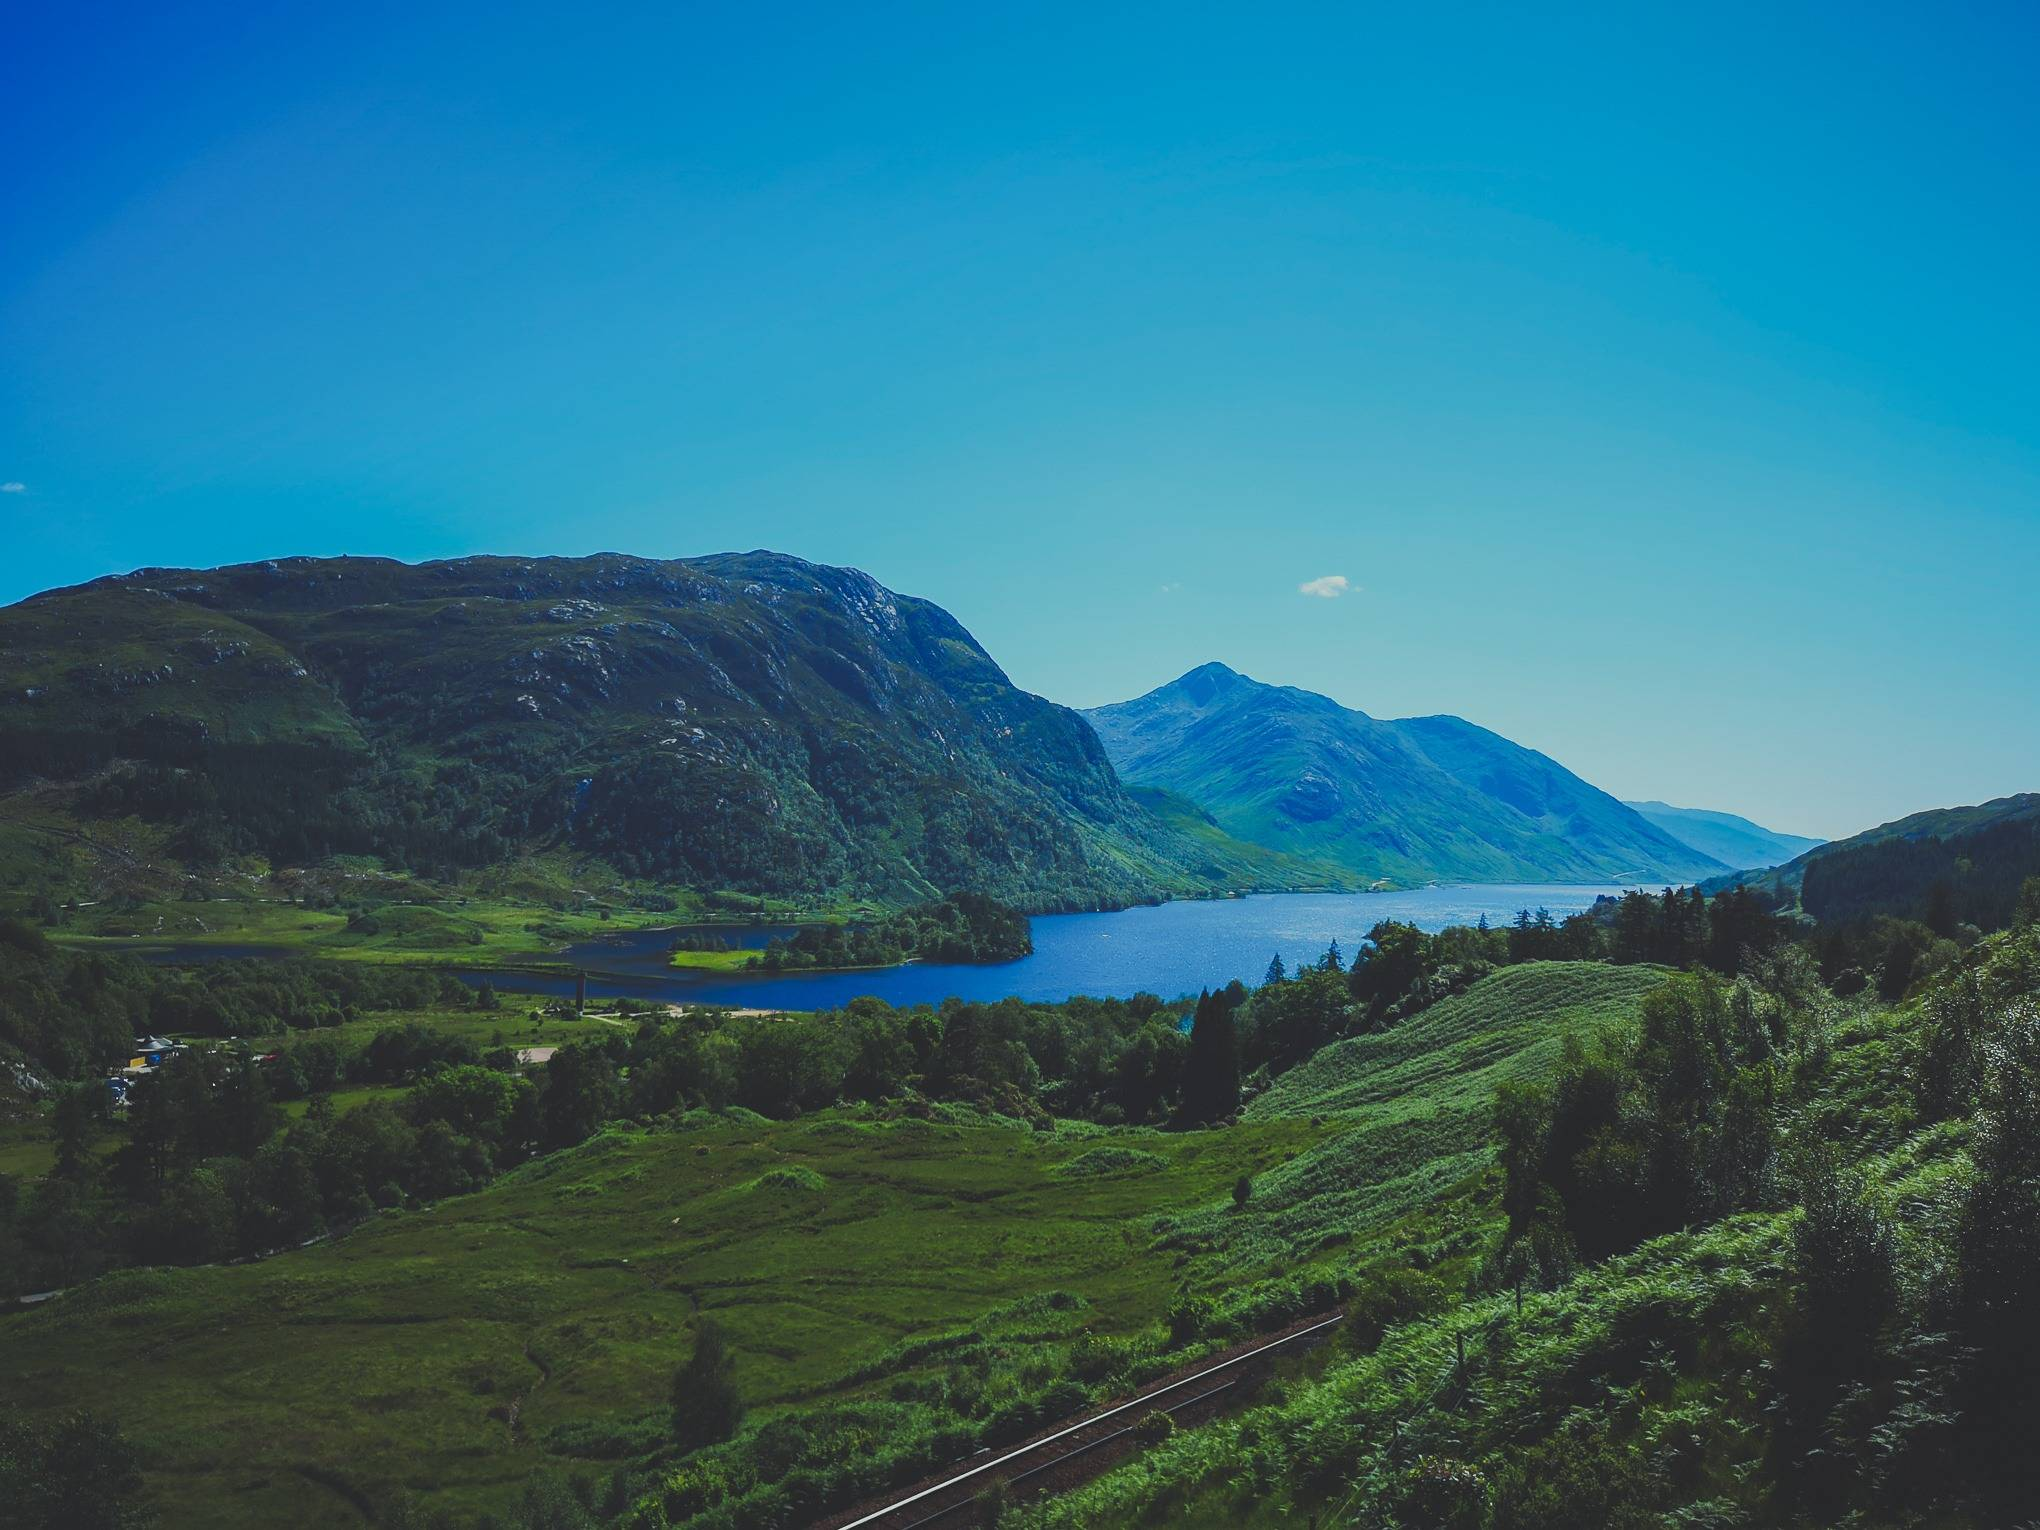 Loch Shiel view from Glenfinnan Viaduct Trail, Scotland. Photo by Alis Monte [CC BY-SA 4.0], via Connecting the Dots